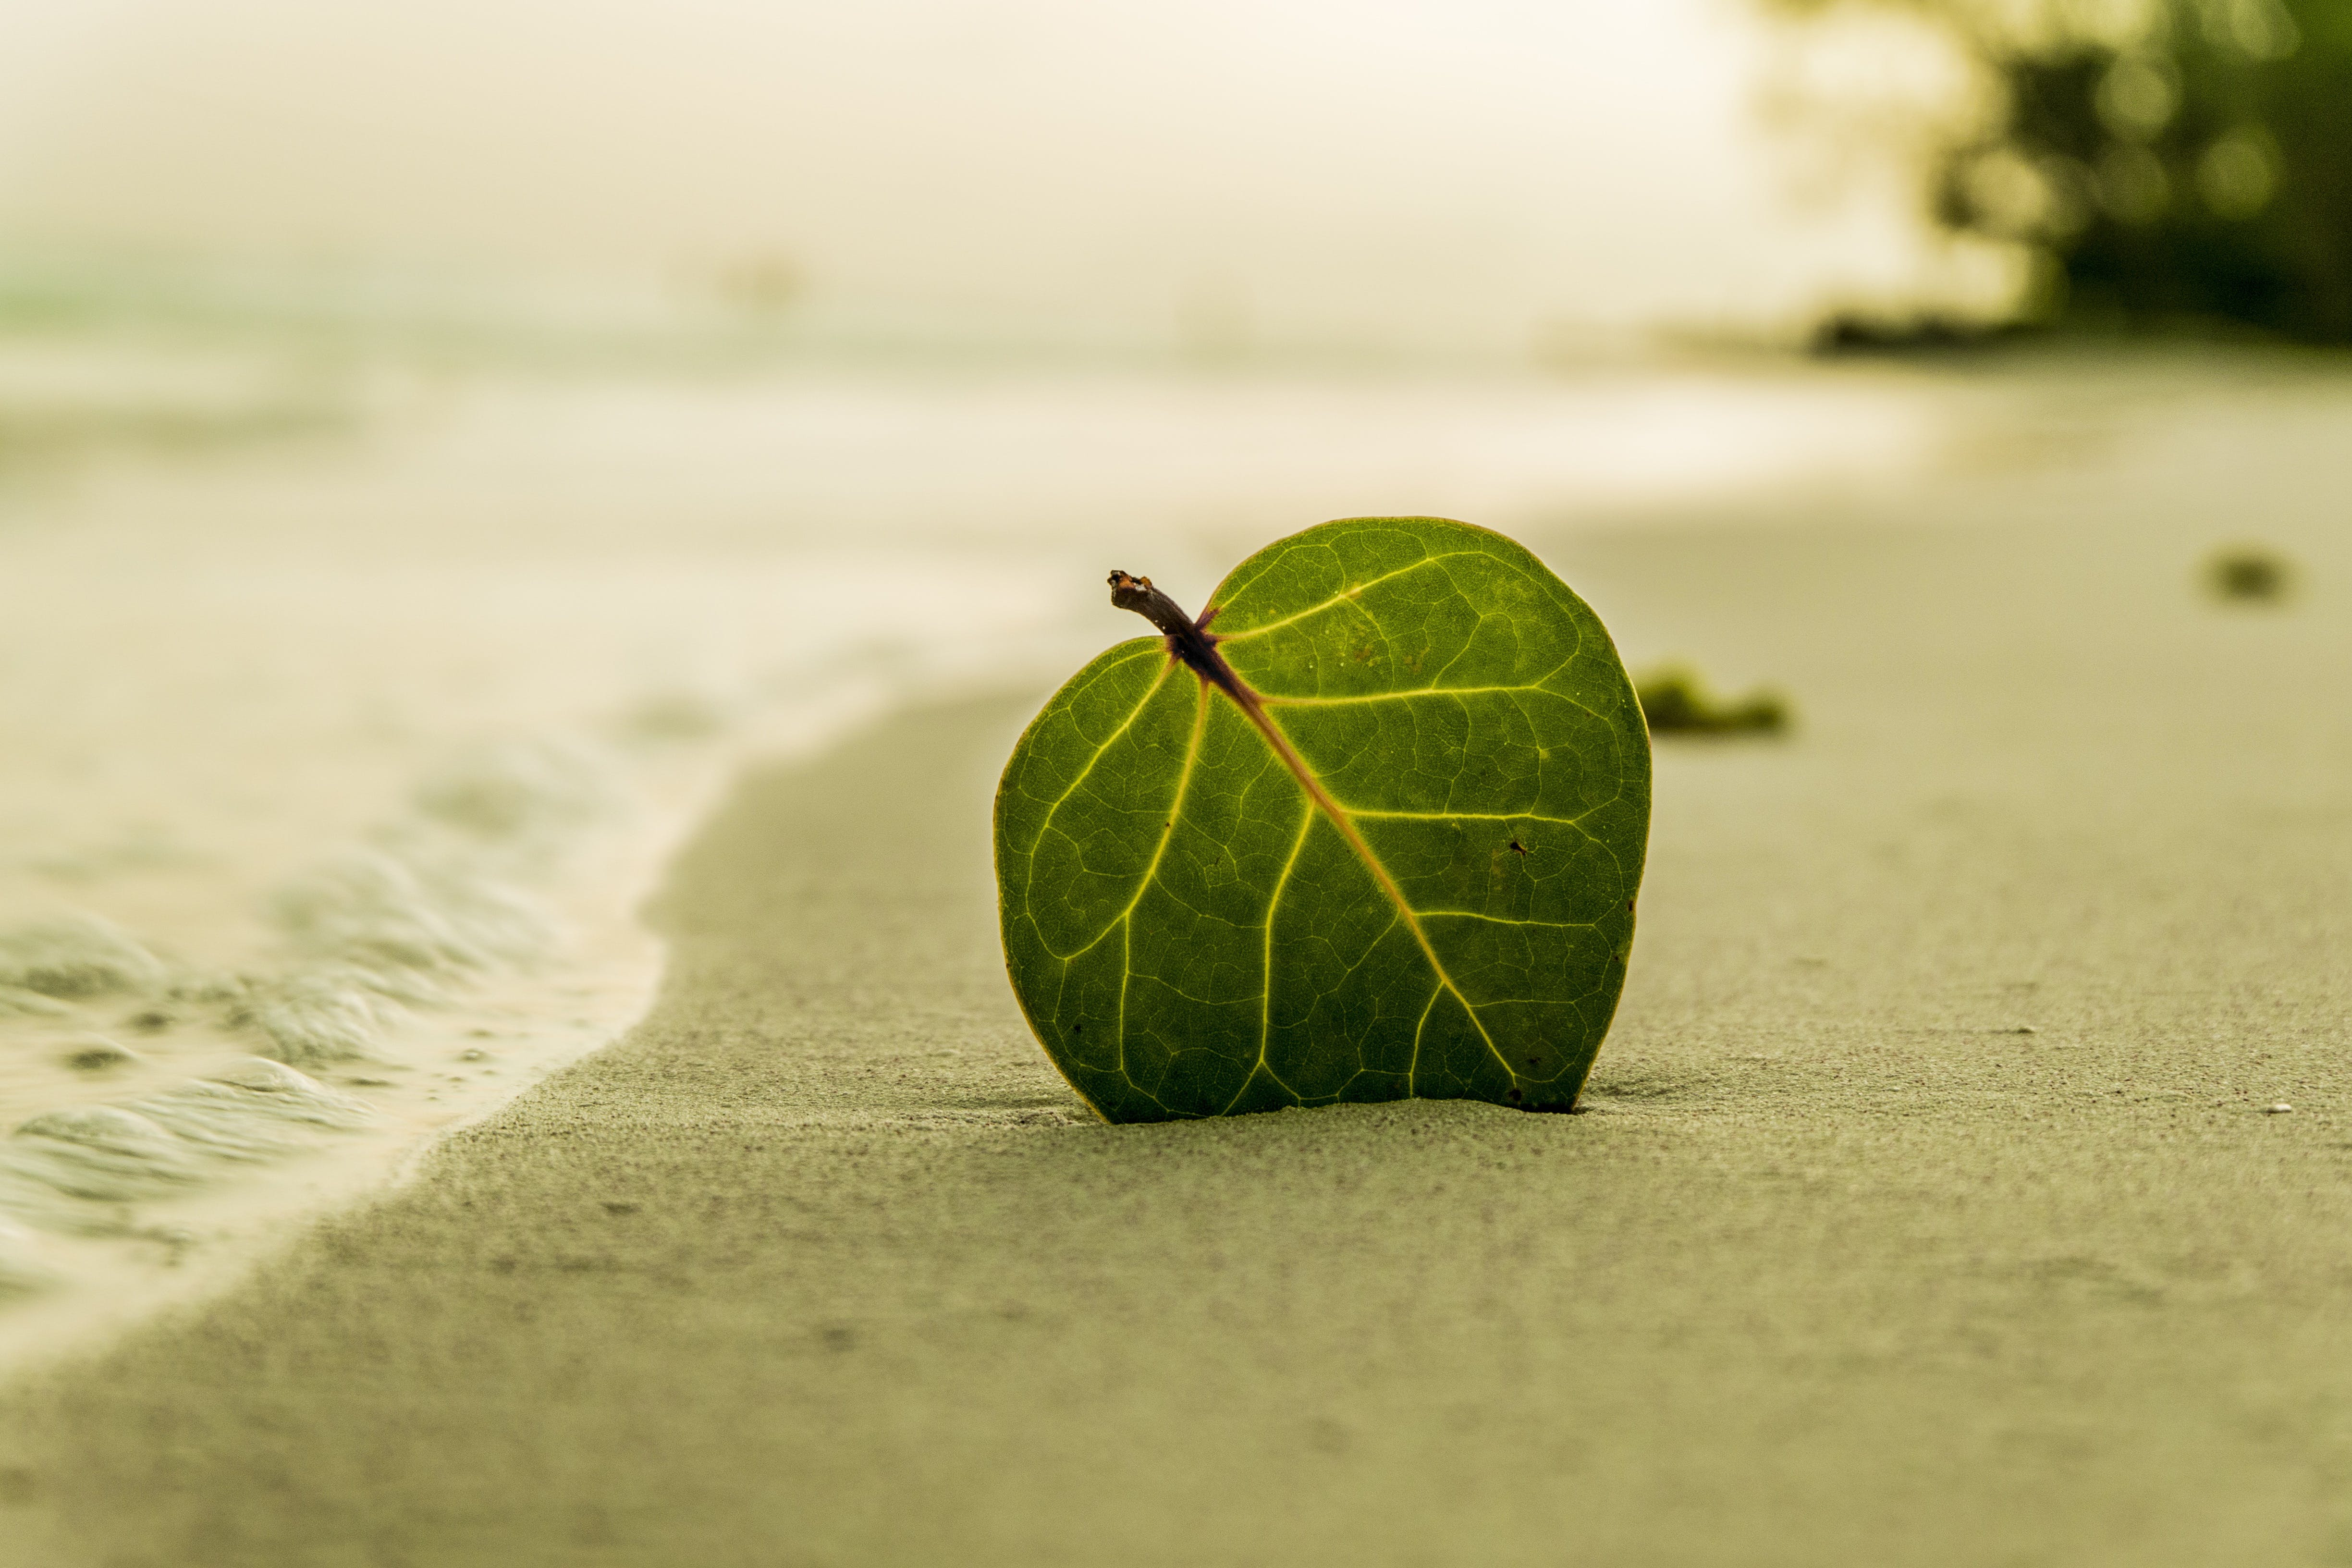 Green Ovate Leaf on Sand Near Shore